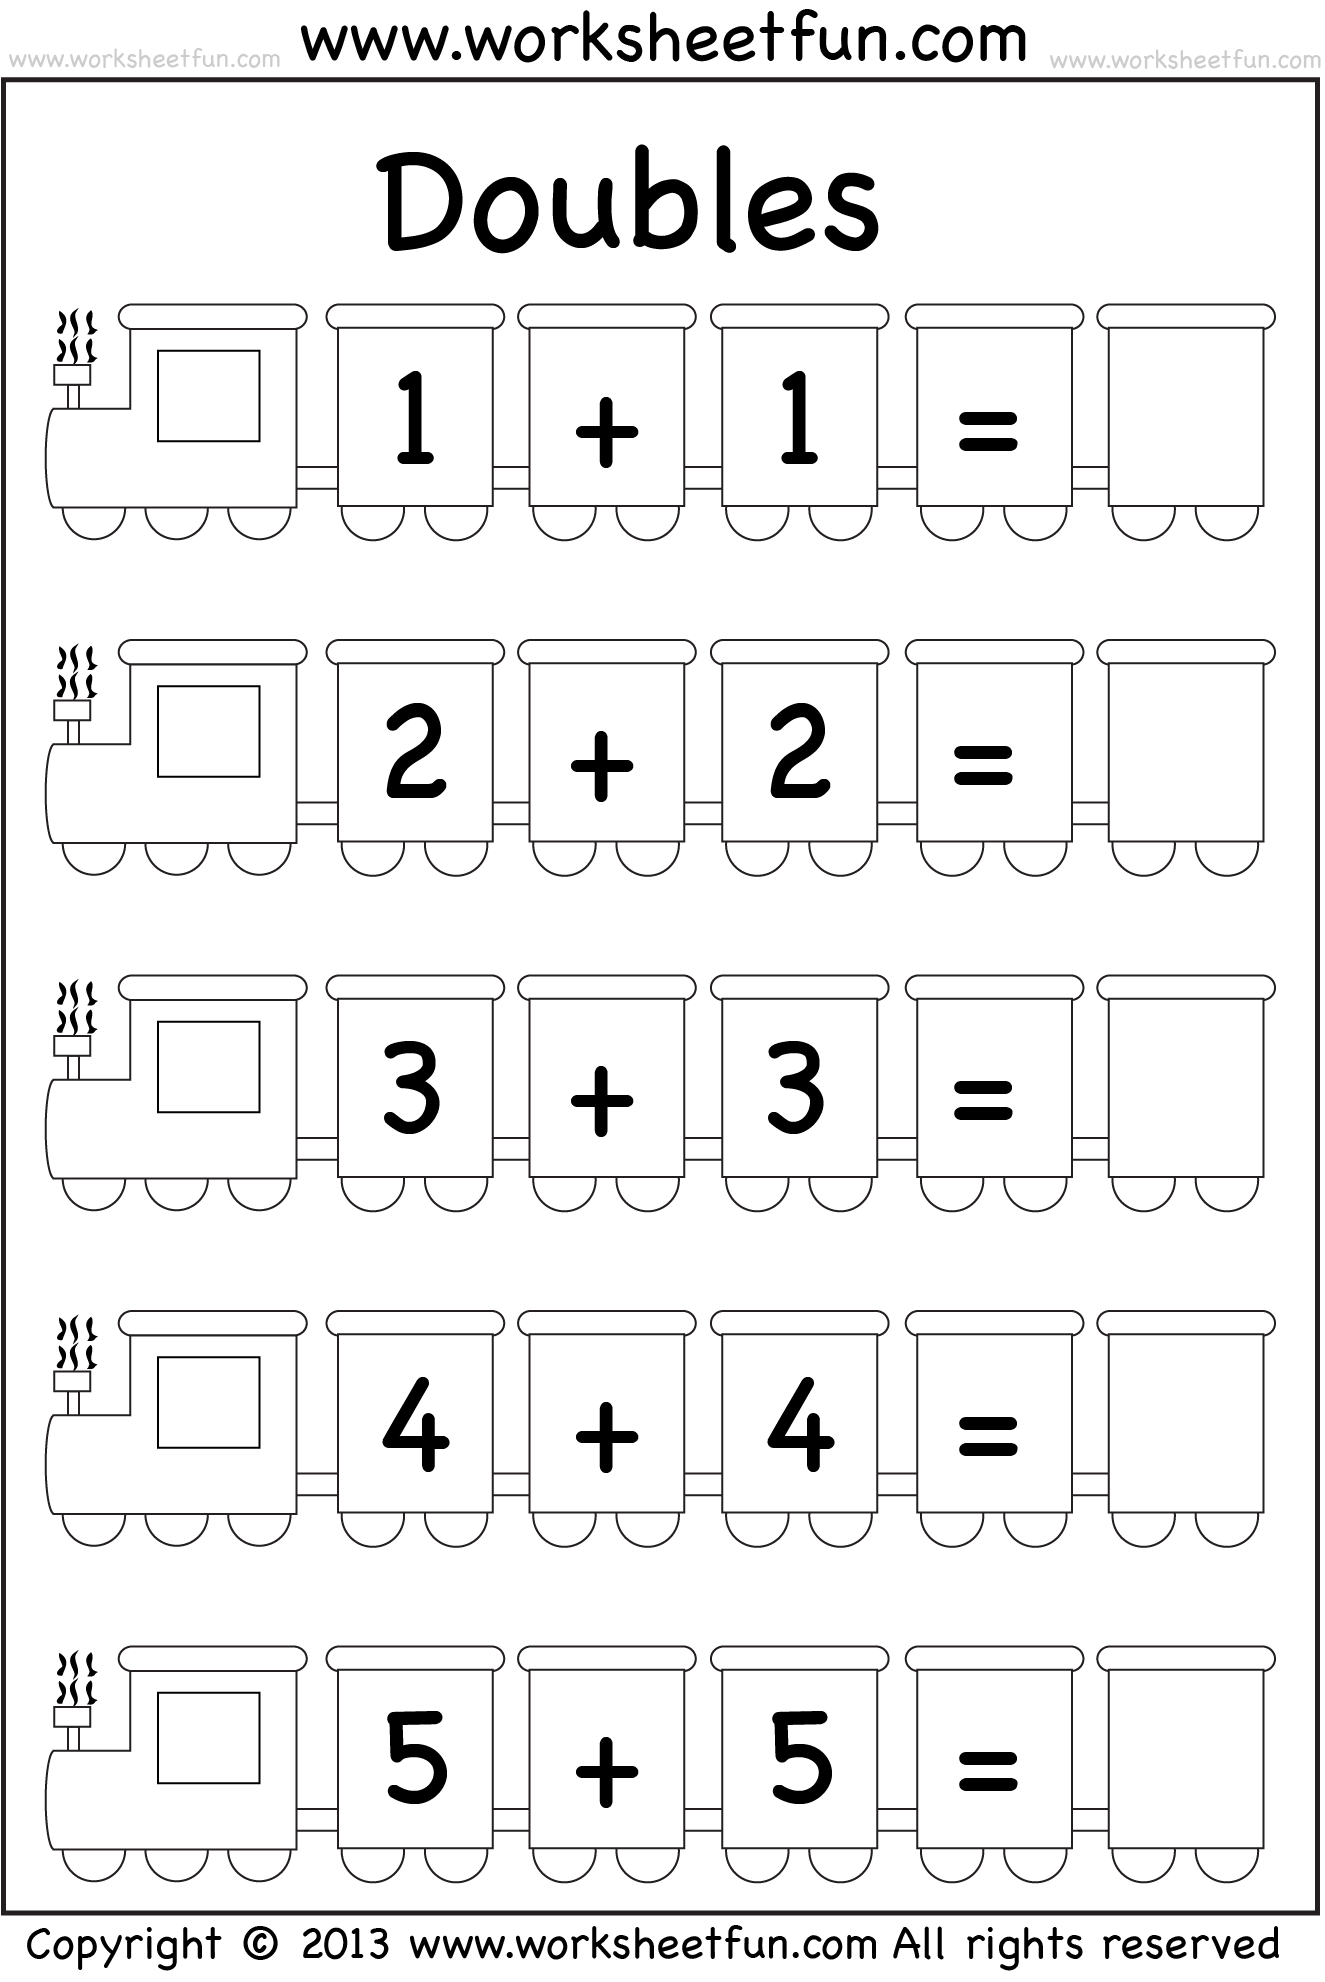 Addition Doubles 1 Worksheet Free Printable Worksheets